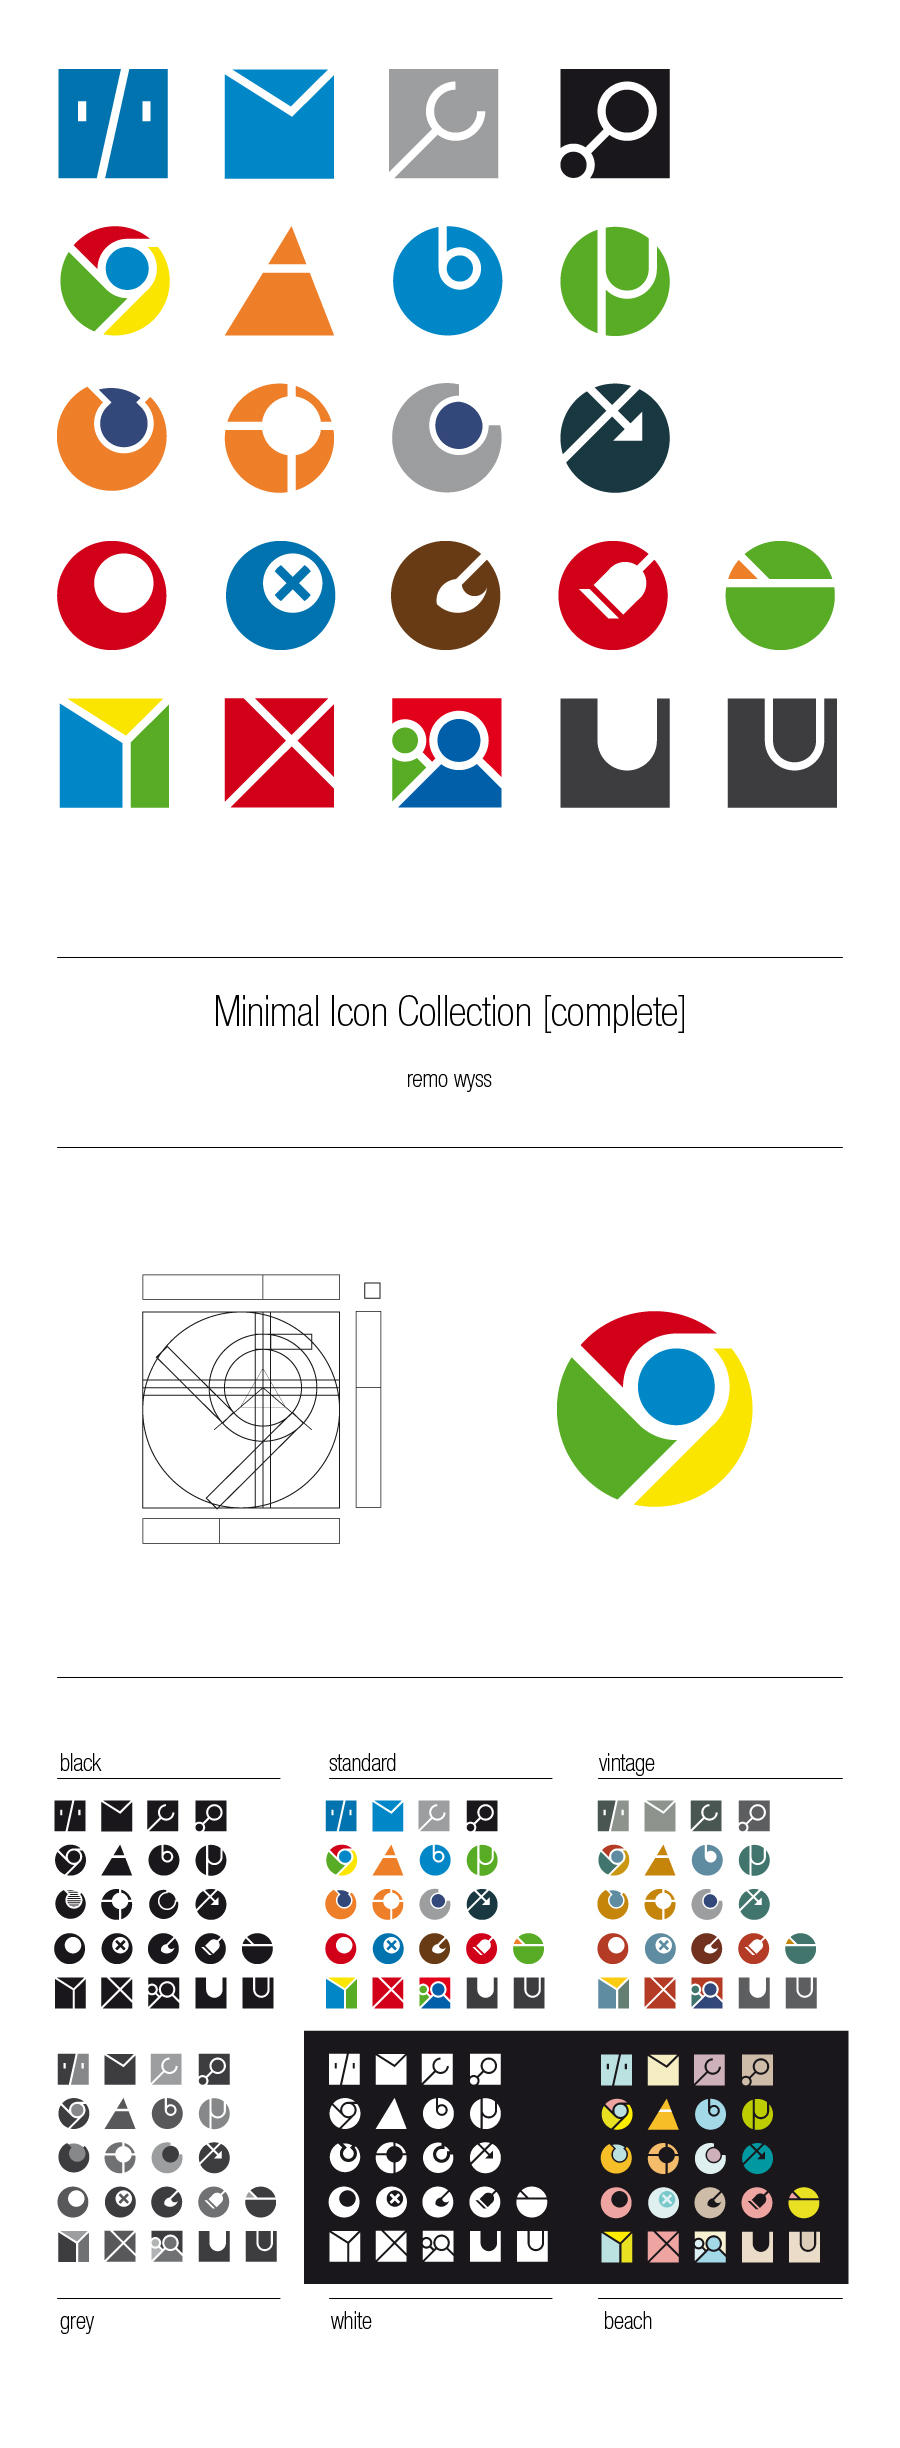 [icon set] Minimal Icon Collection [complete] by Primofenax